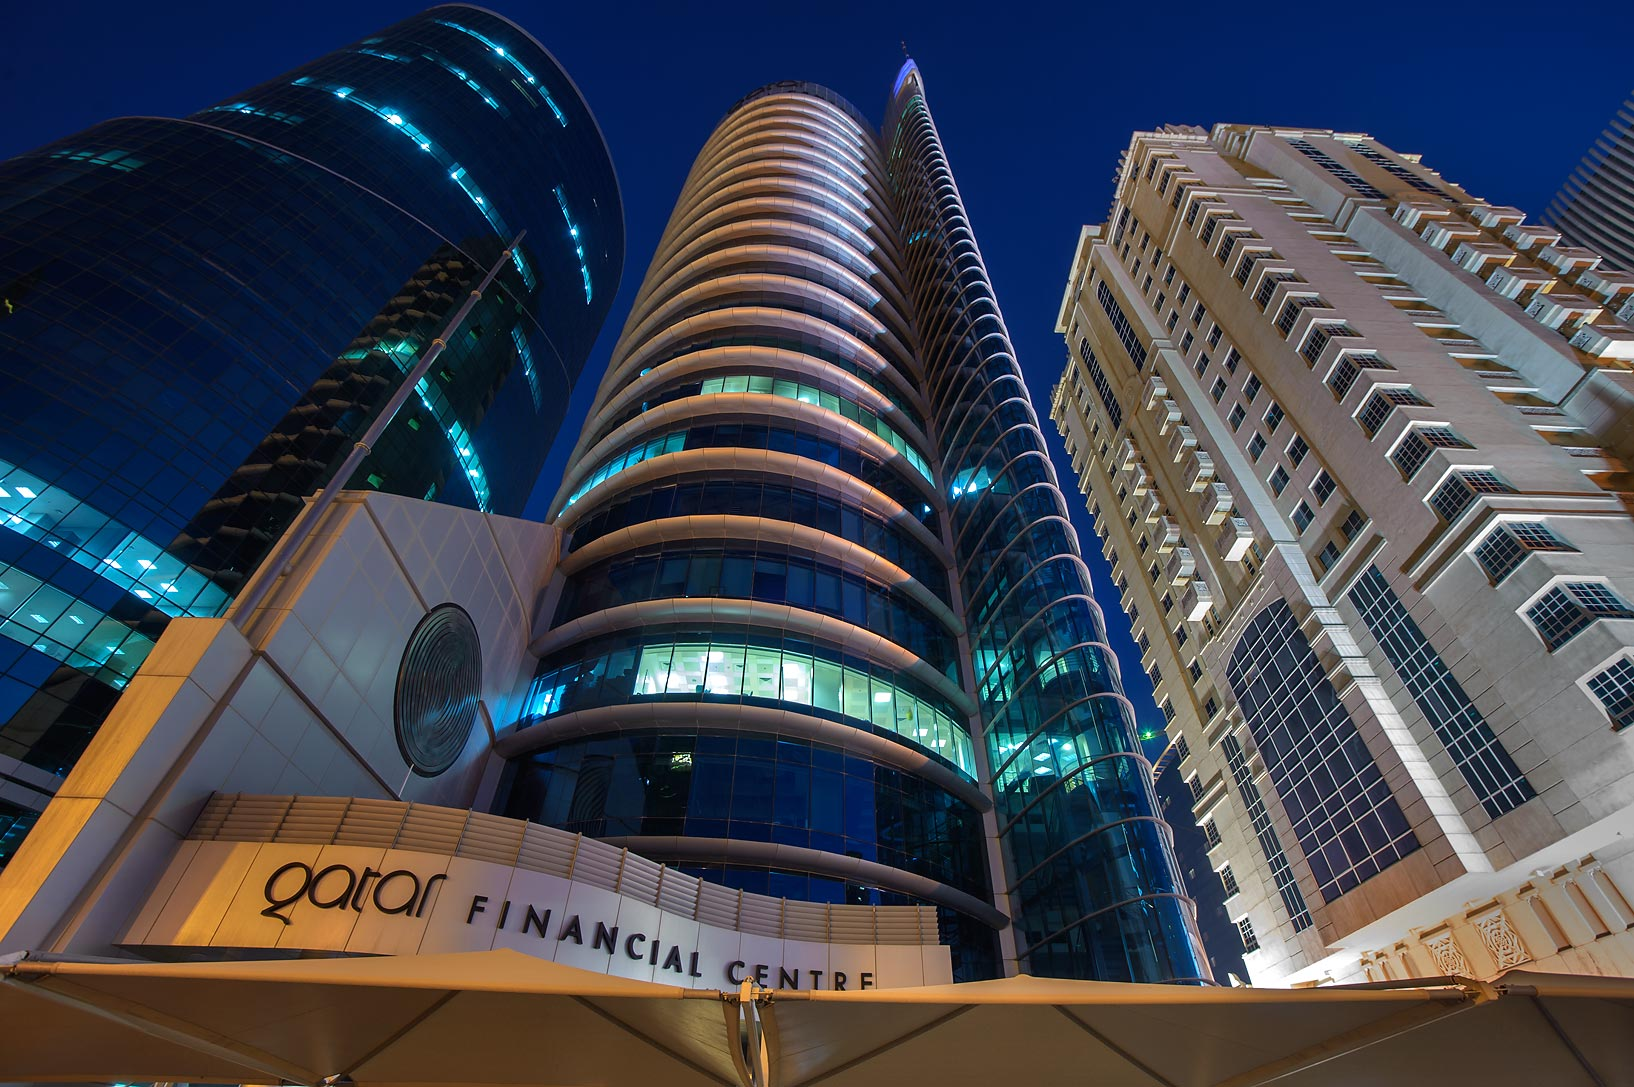 Financial Center Tower in West Bay. Doha, Qatar